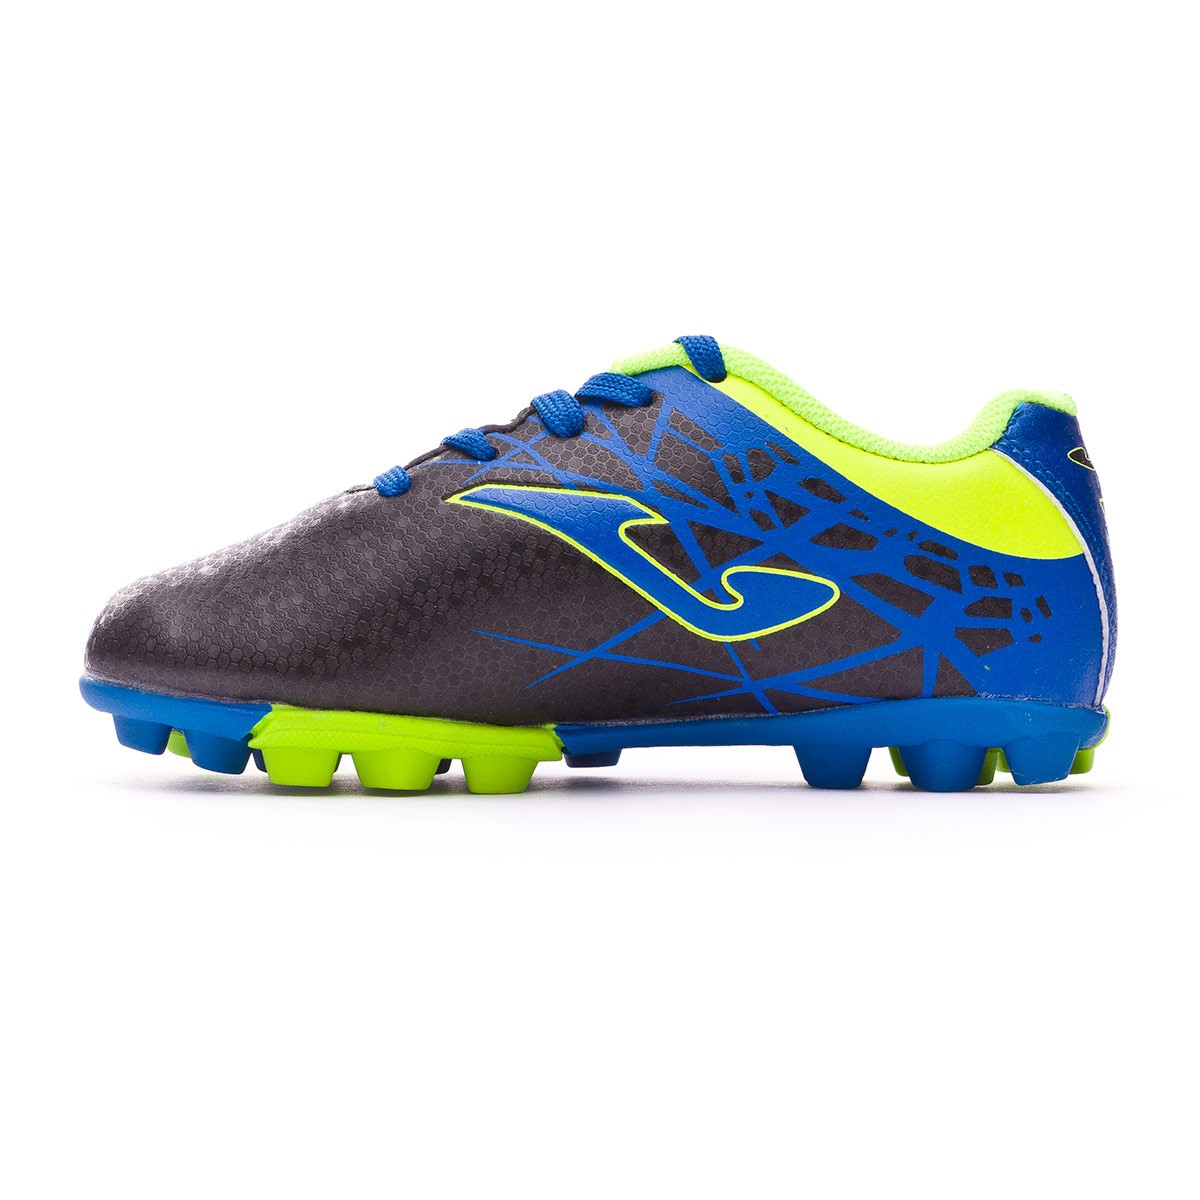 6150992a8f800 Football Boots Joma Kids Champion AG Black-Blue-Yellow - Tienda de fútbol  Fútbol Emotion